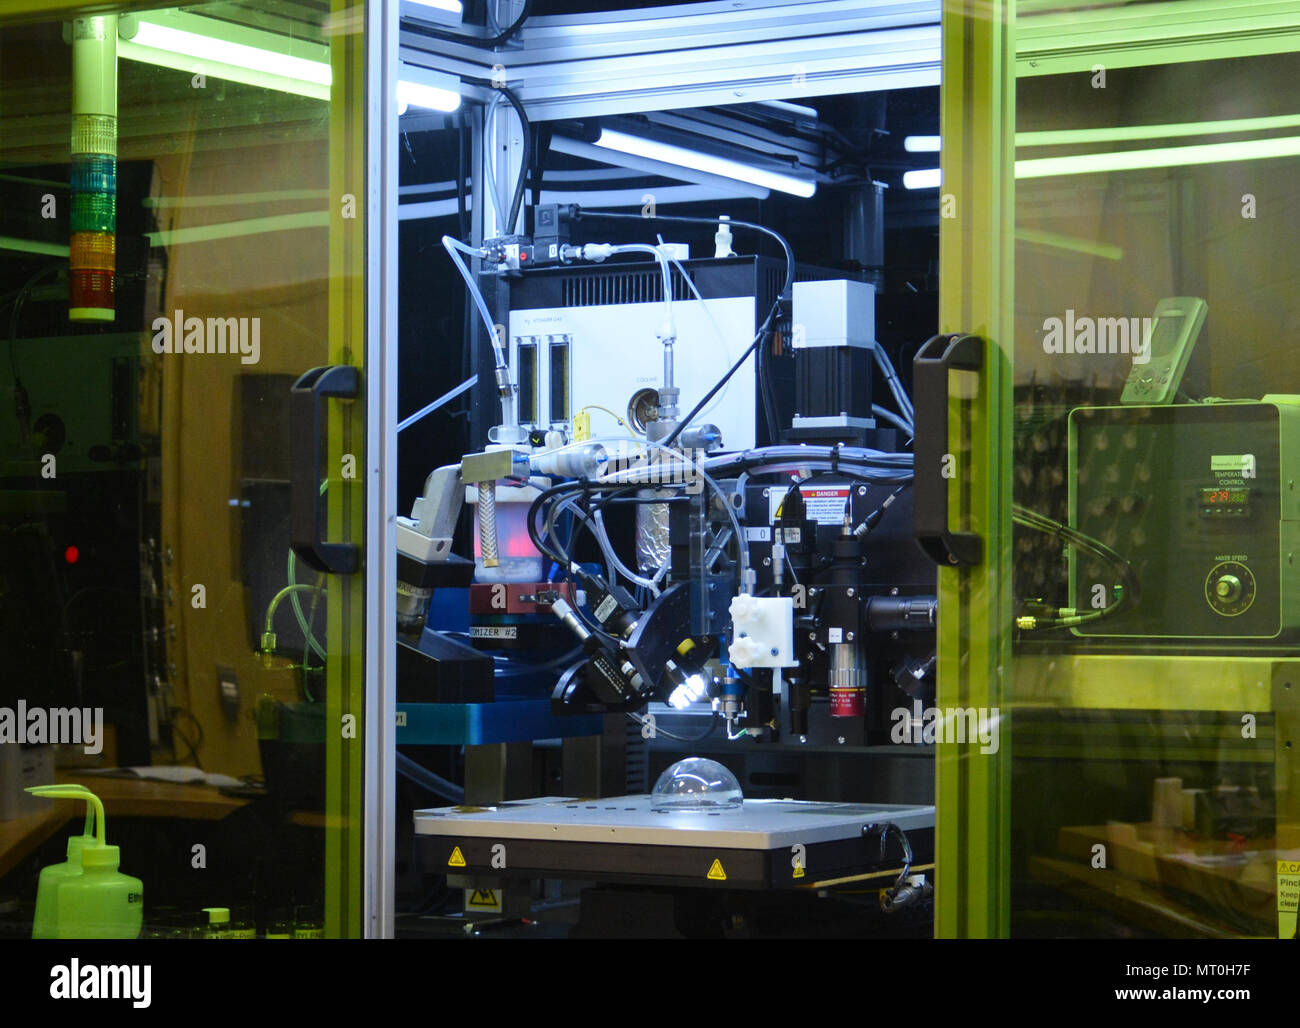 WRIGHT-PATTERSON AIR FORCE BASE, Ohio – Researchers at the Materials and Manufacturing Directorate, Air Force Research Laboratory, have demonstrated the ability to print solar cells on three-dimensional surfaces using a modified aerosol spray printer. The ability to print three dimensionally opens the aperture for future application of solar cells on diverse surfaces for sensors, robotics and more. (U.S. Air Force photo by David Dixon/released) - Stock Image